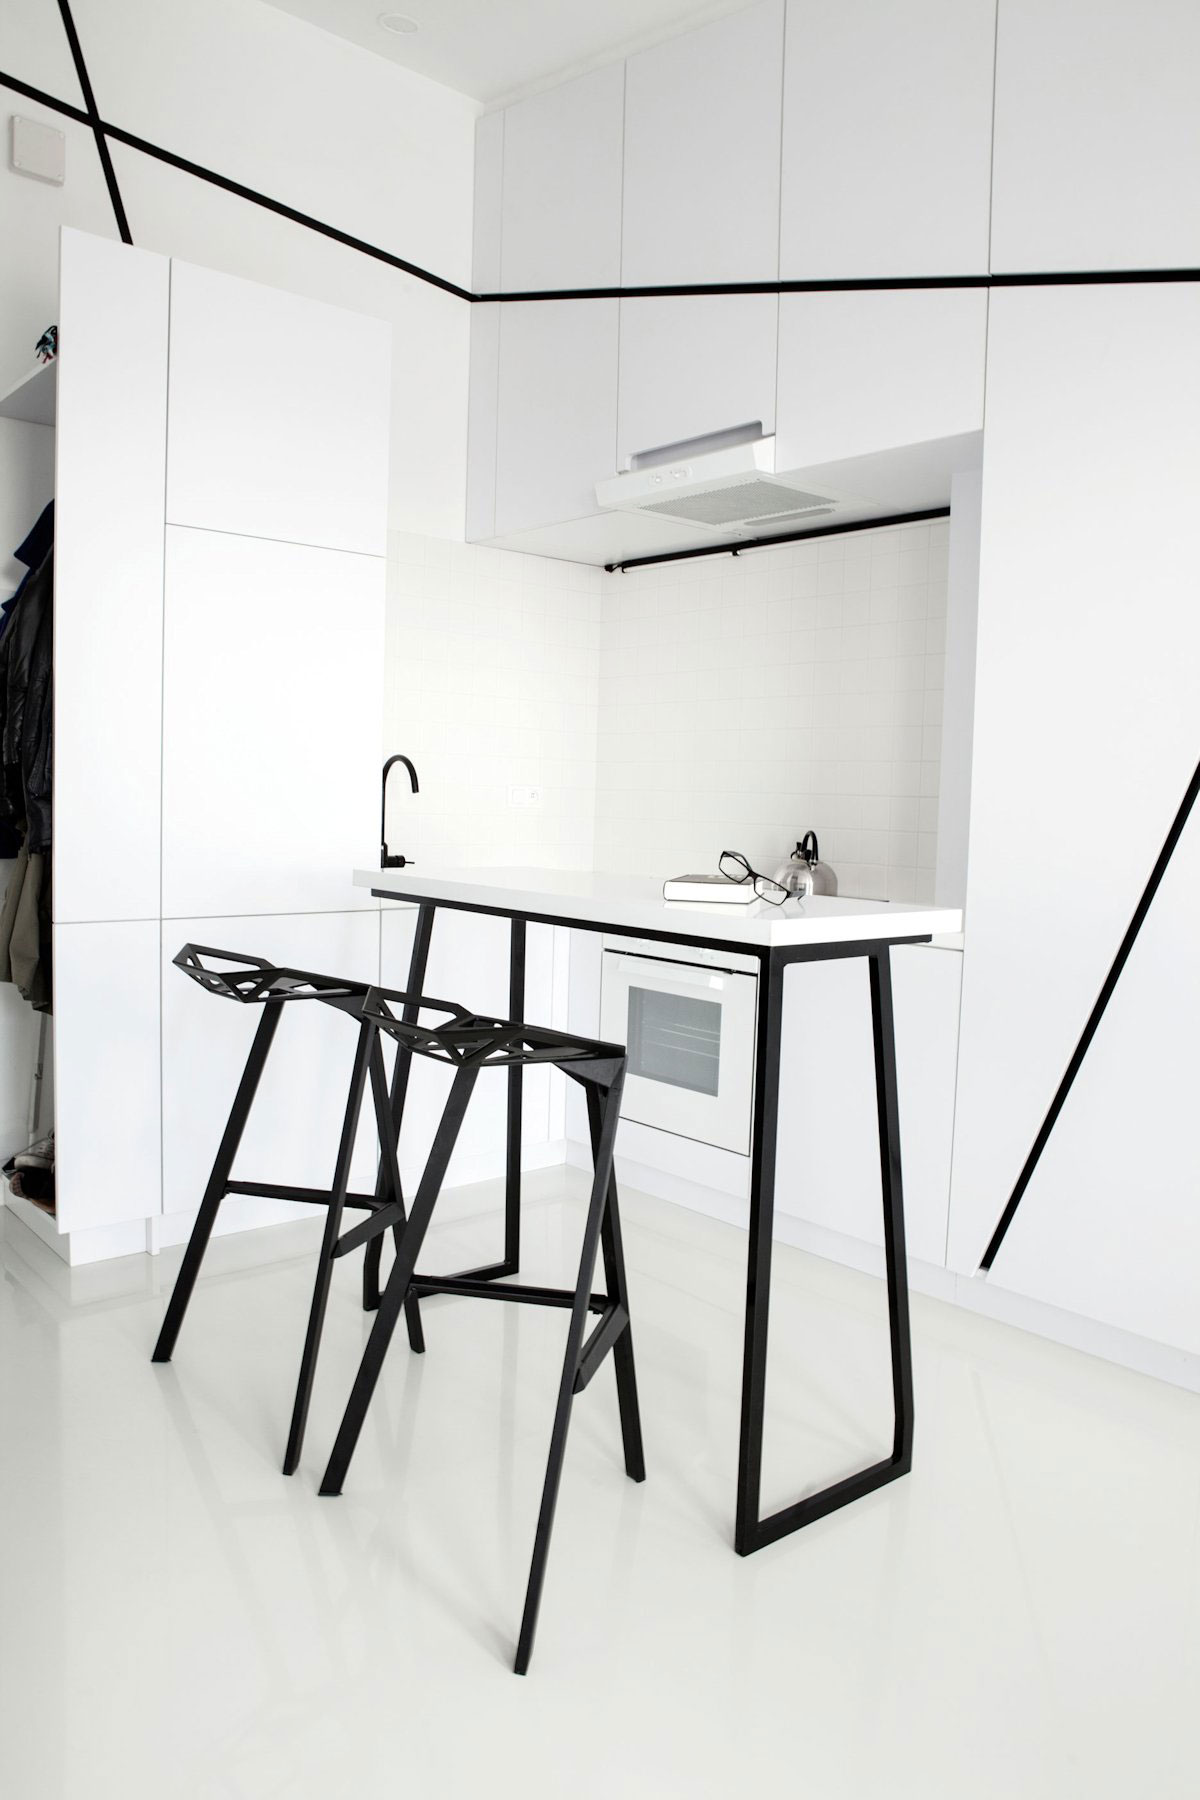 geometric-black-and-white-kitchen